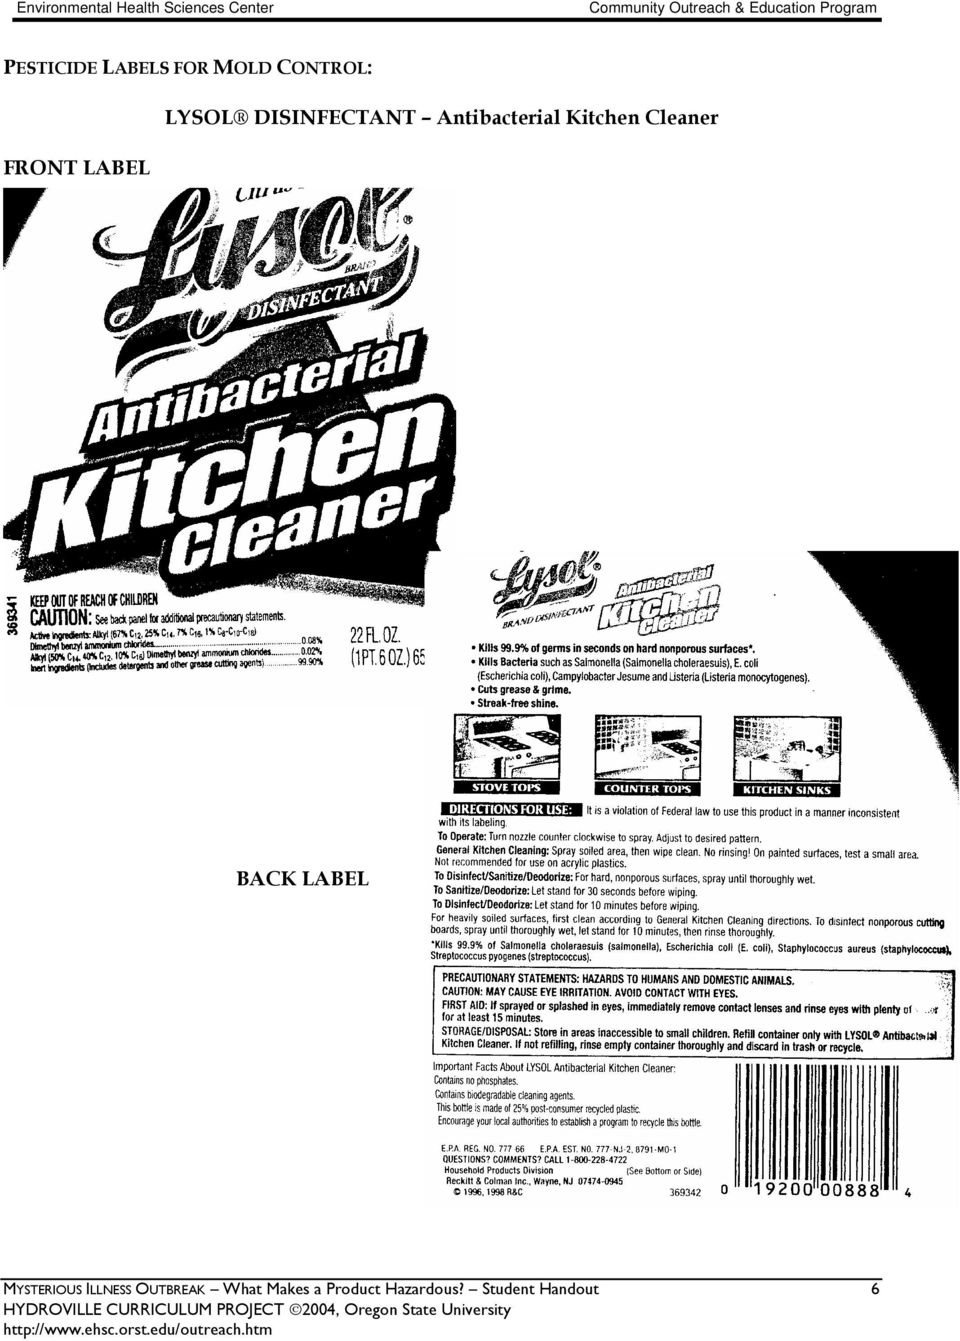 Kitchen Cleaner BACK LABEL MYSTERIOUS ILLNESS